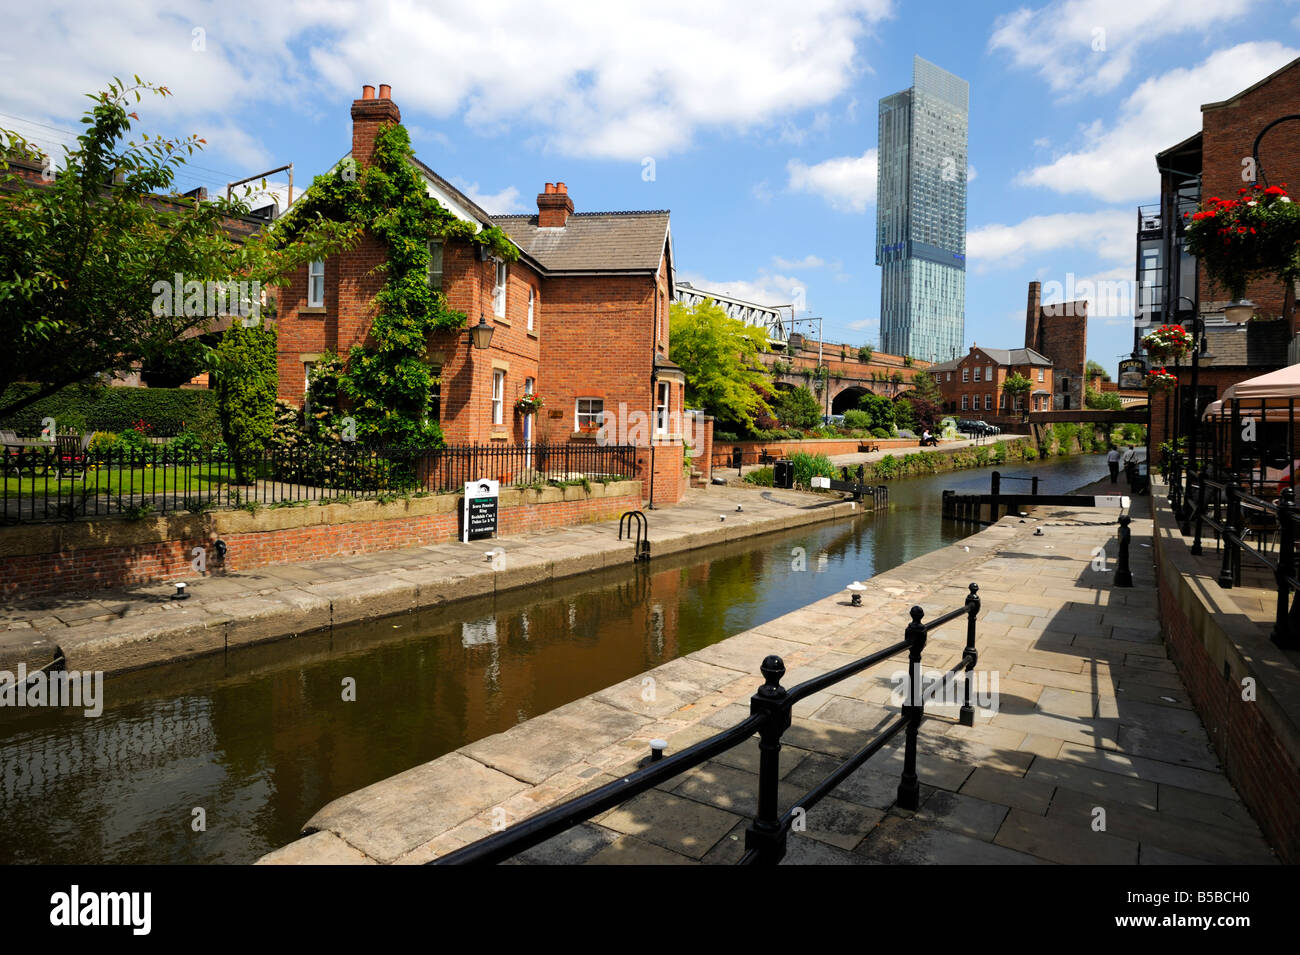 Canal and lock keepers cottage at Castlefield with the Beetham Tower in the background, Manchester, England, Europe - Stock Image